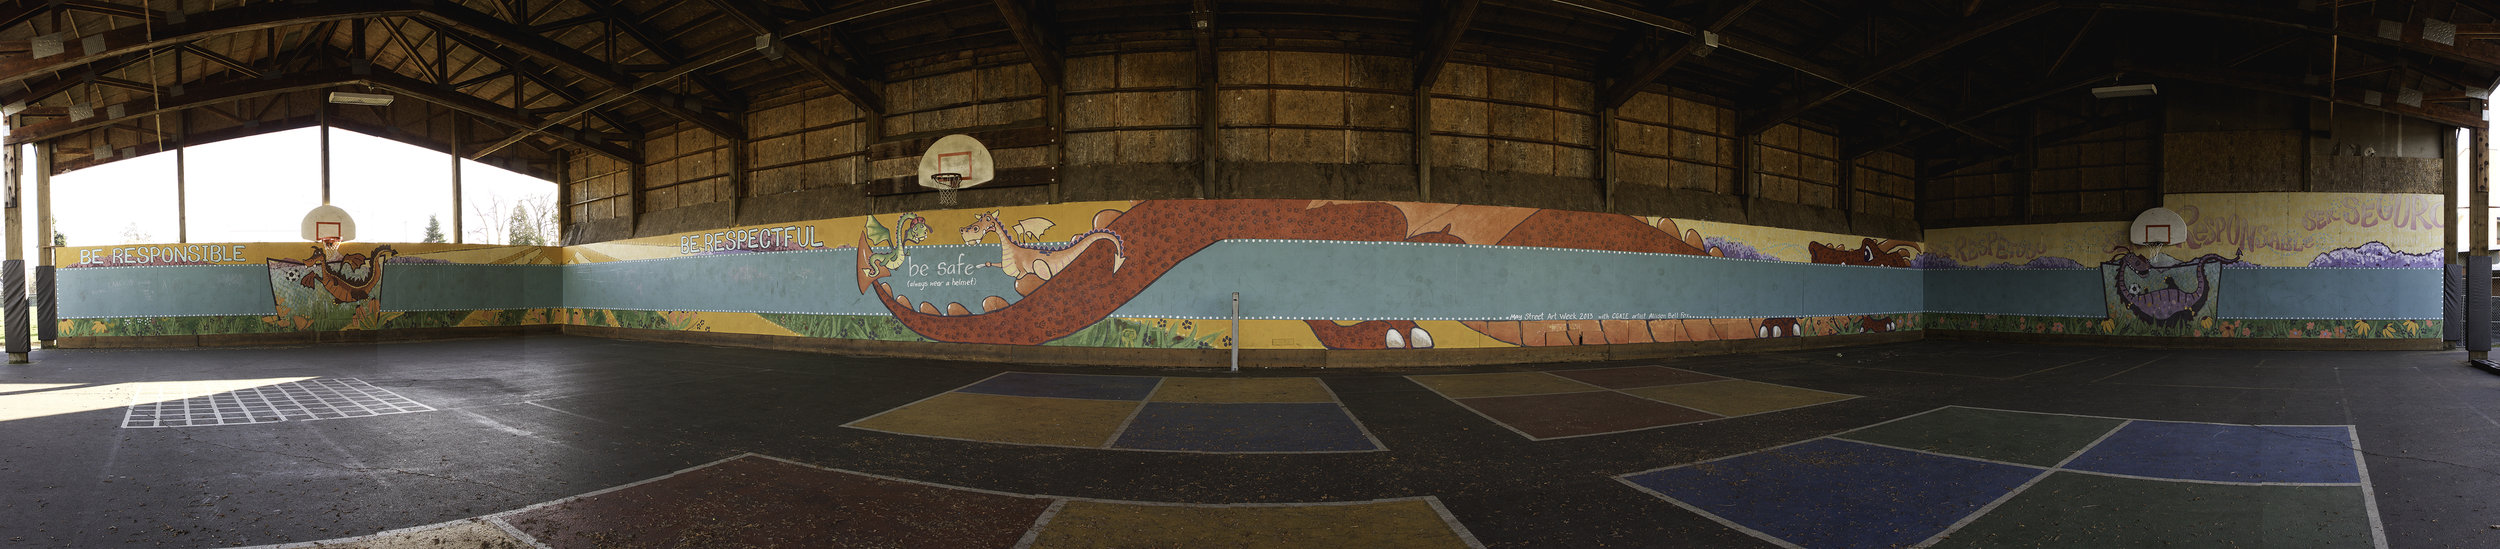 Panorama of the shed